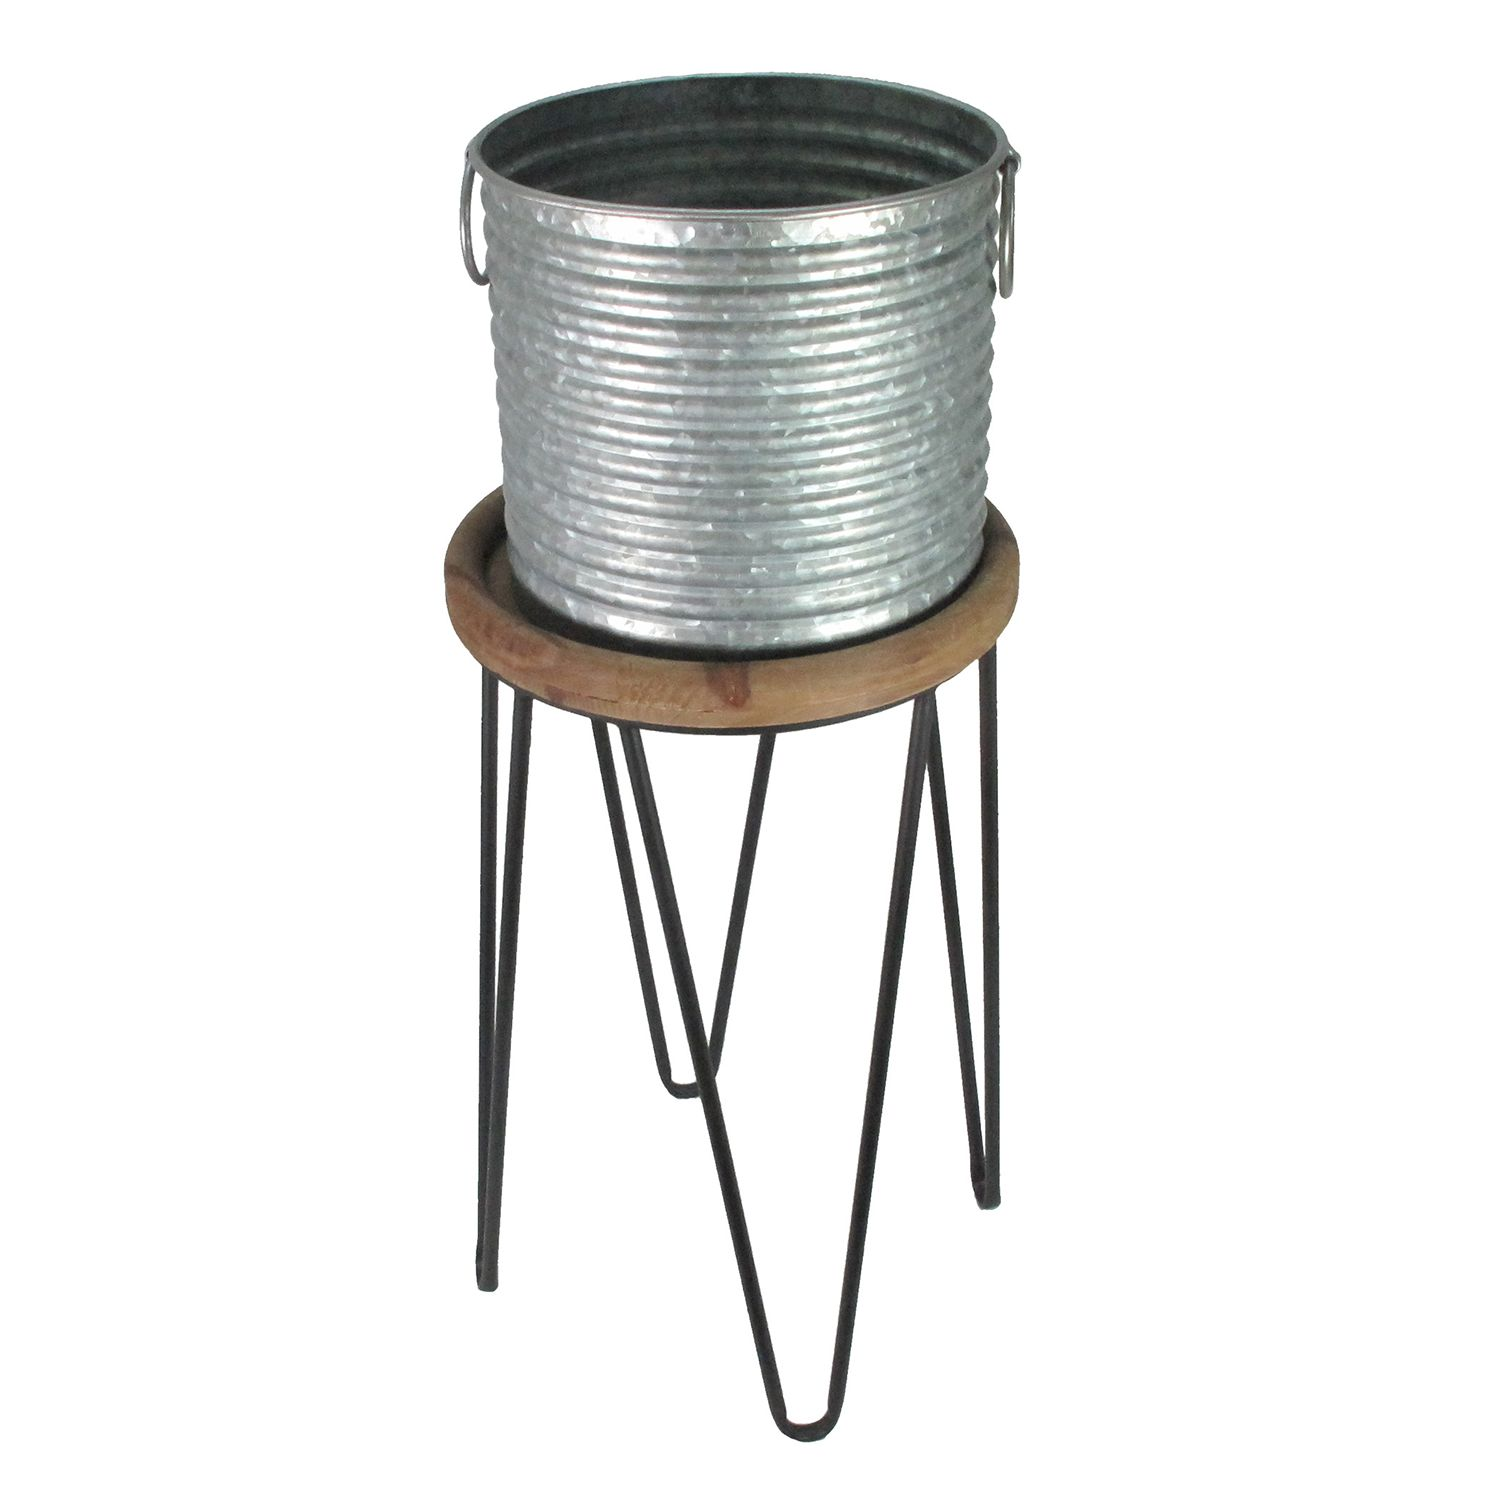 NEW! SONOMA Goods For Life™ Indoor / Outdoor Galvanized Bucket Plant Stand